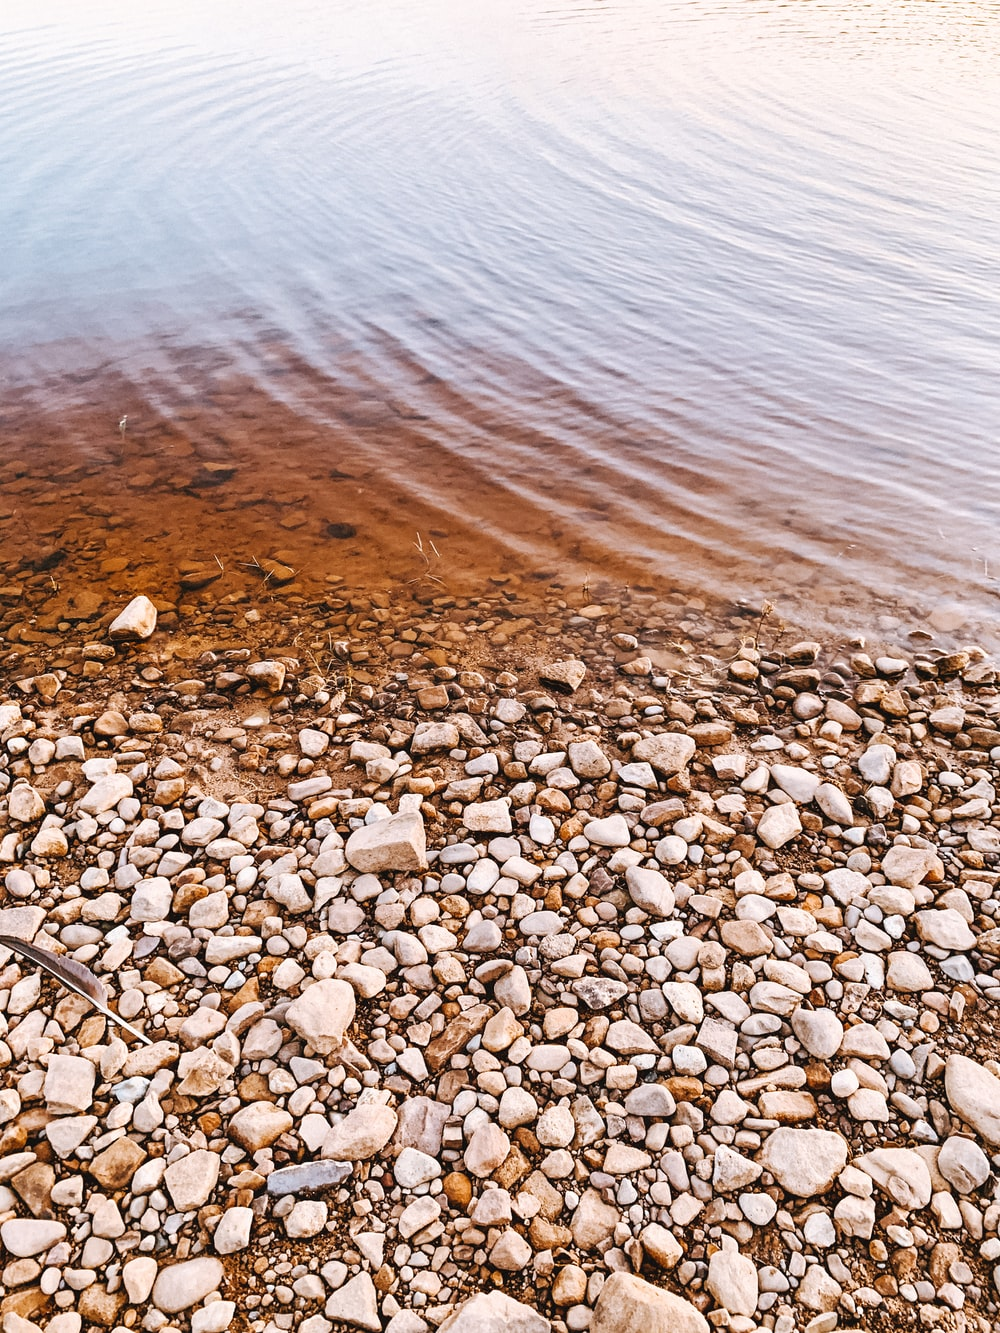 brown and white stones near body of water during daytime